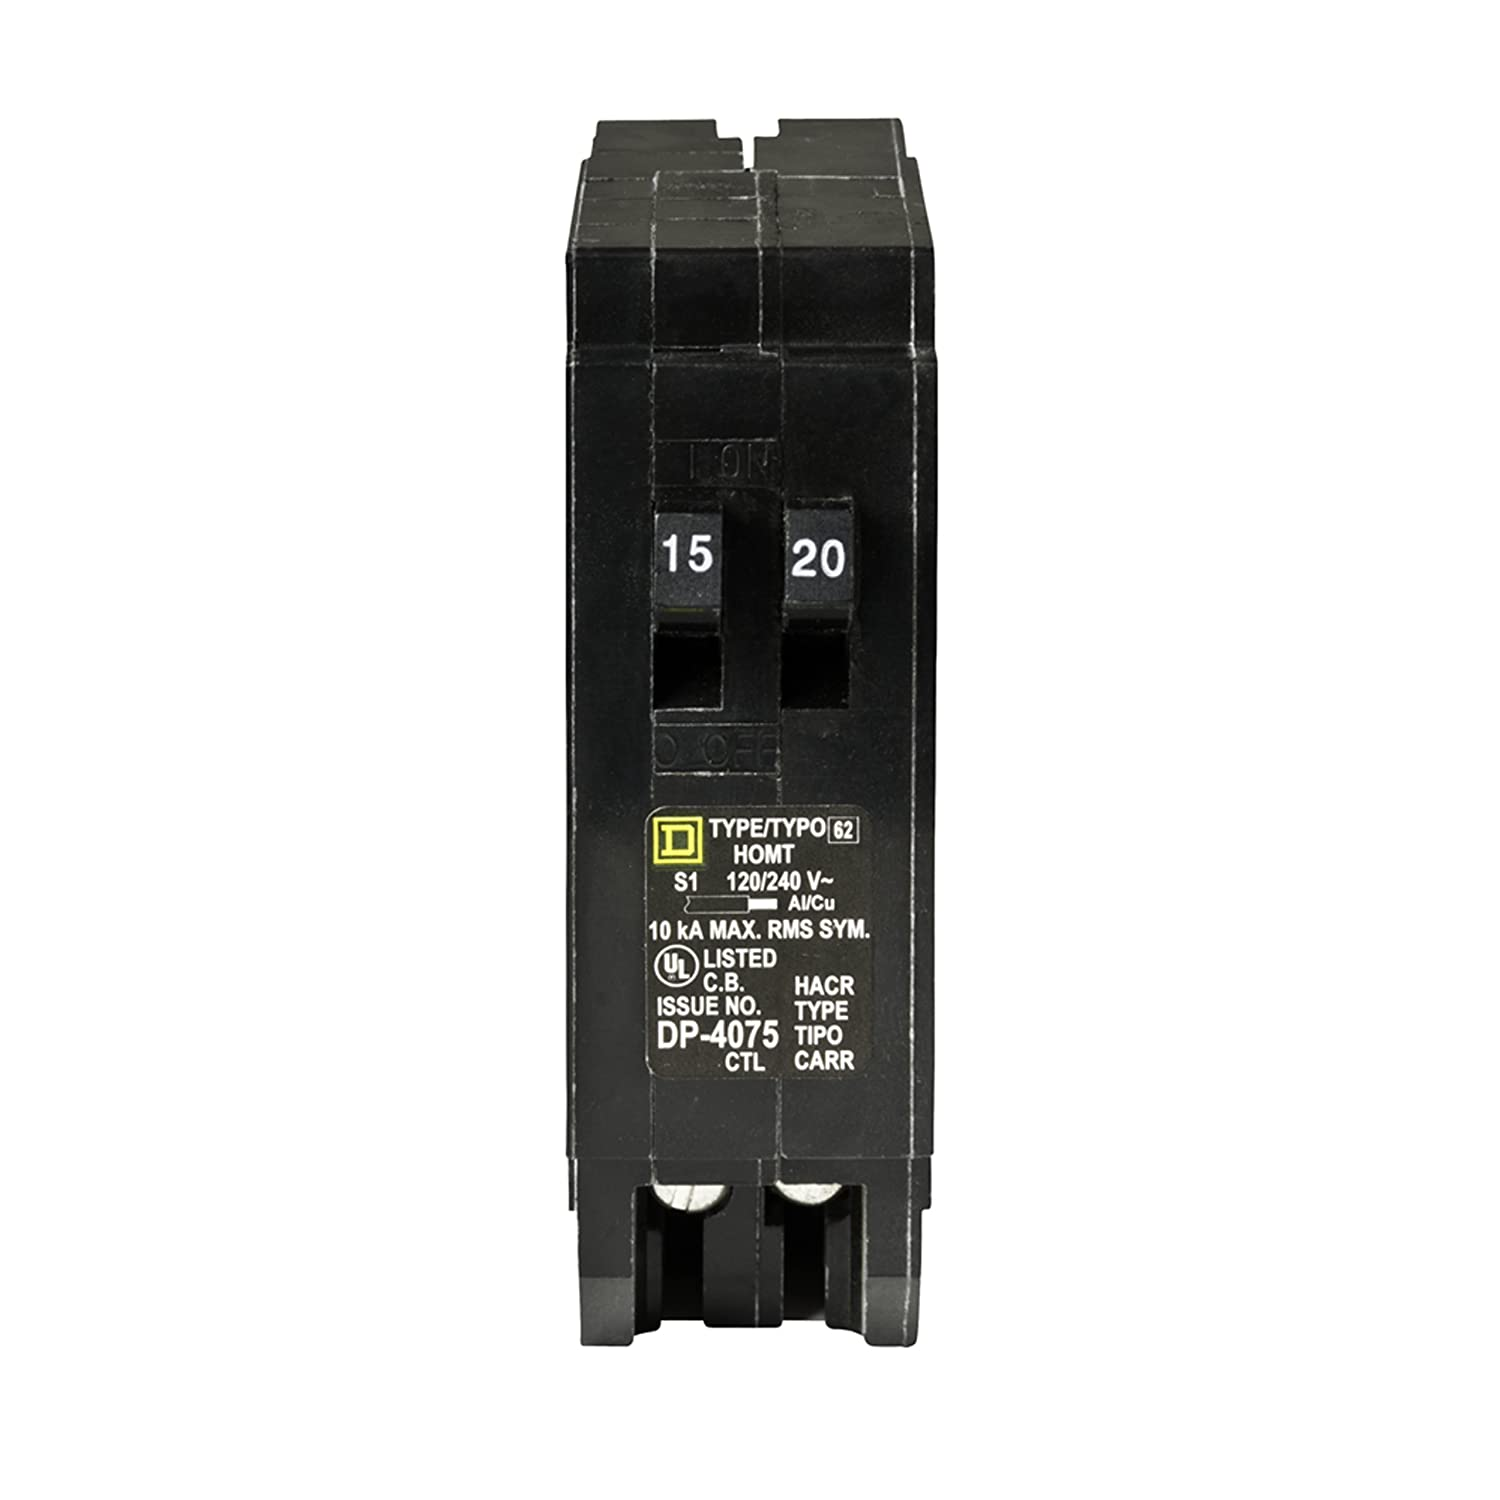 Square D by Schneider Electric HOMT1520CP Square D Homeline, Single Pole Tandem Circuit Breaker